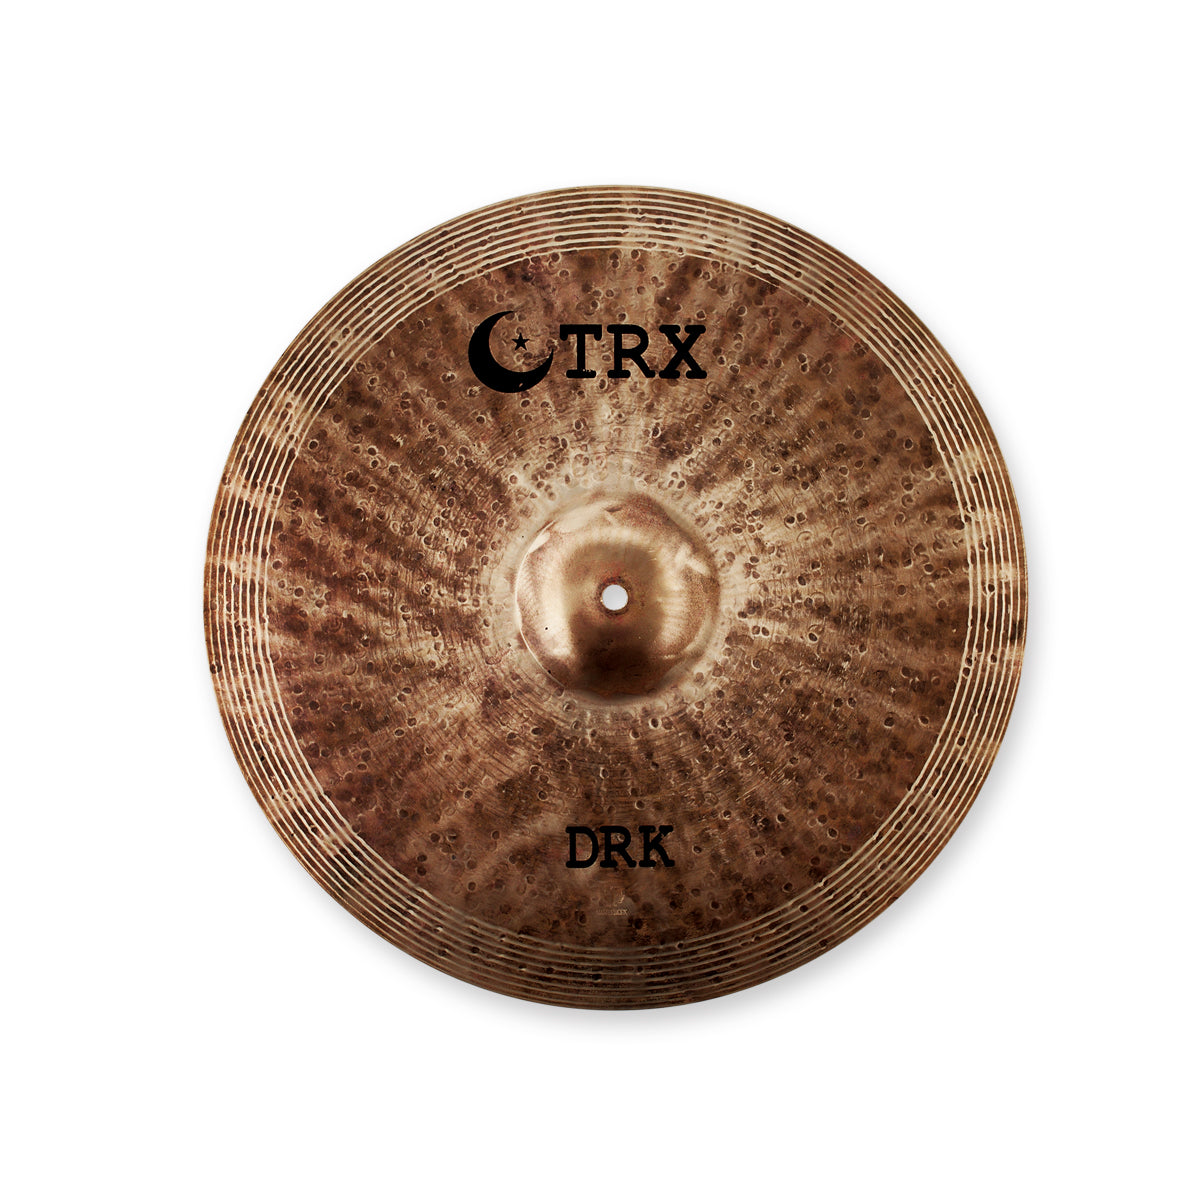 TRX Cymbals DRK Series Crash